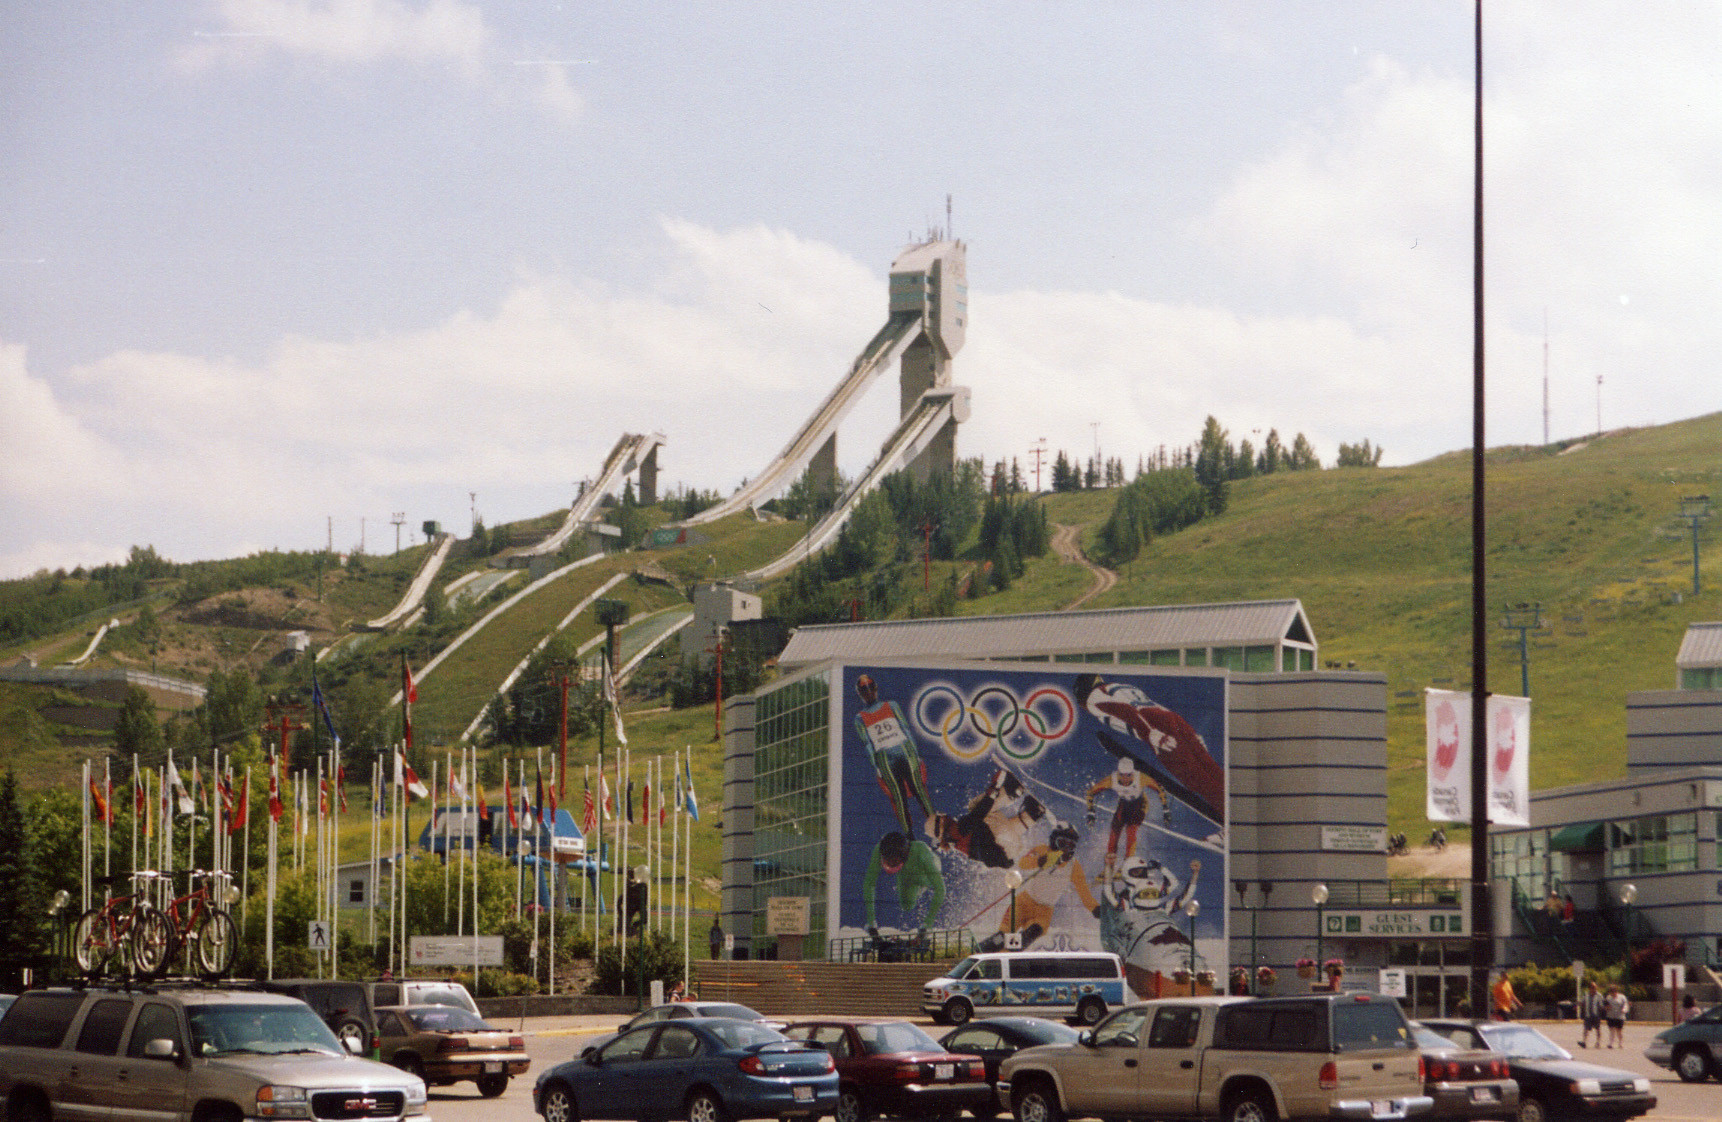 The ski jump facility in Calgary pictured in the summer of 2005 ©Wikimedia